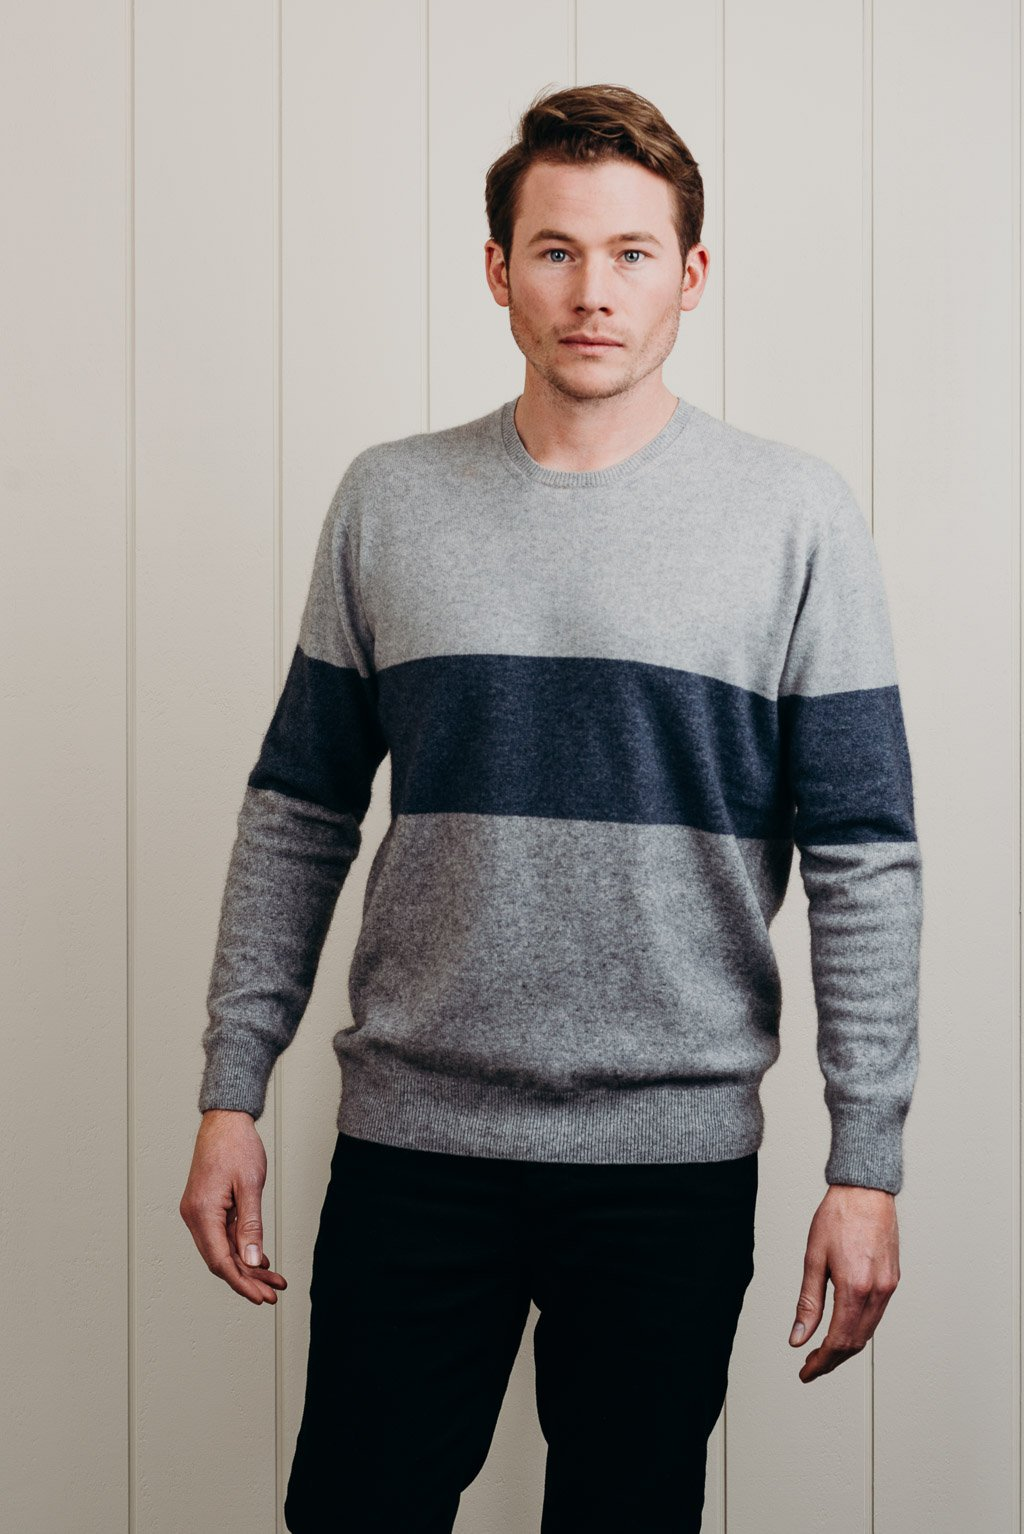 Town Sweater - Kapeka NZ